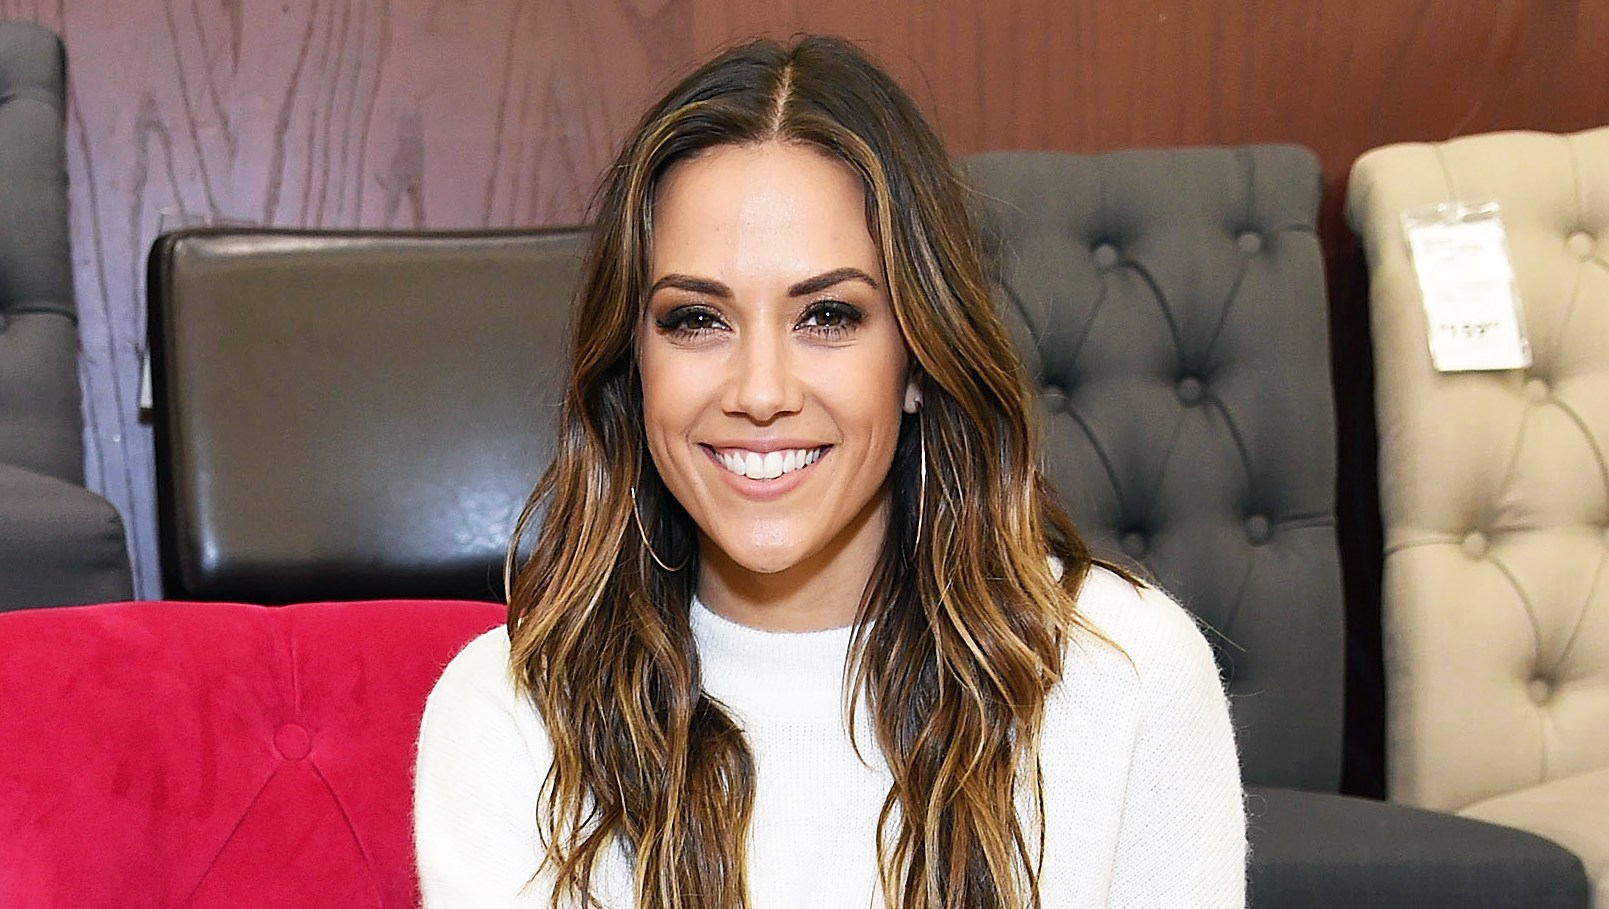 Jana Kramer 25 Things You Don't Know About Me